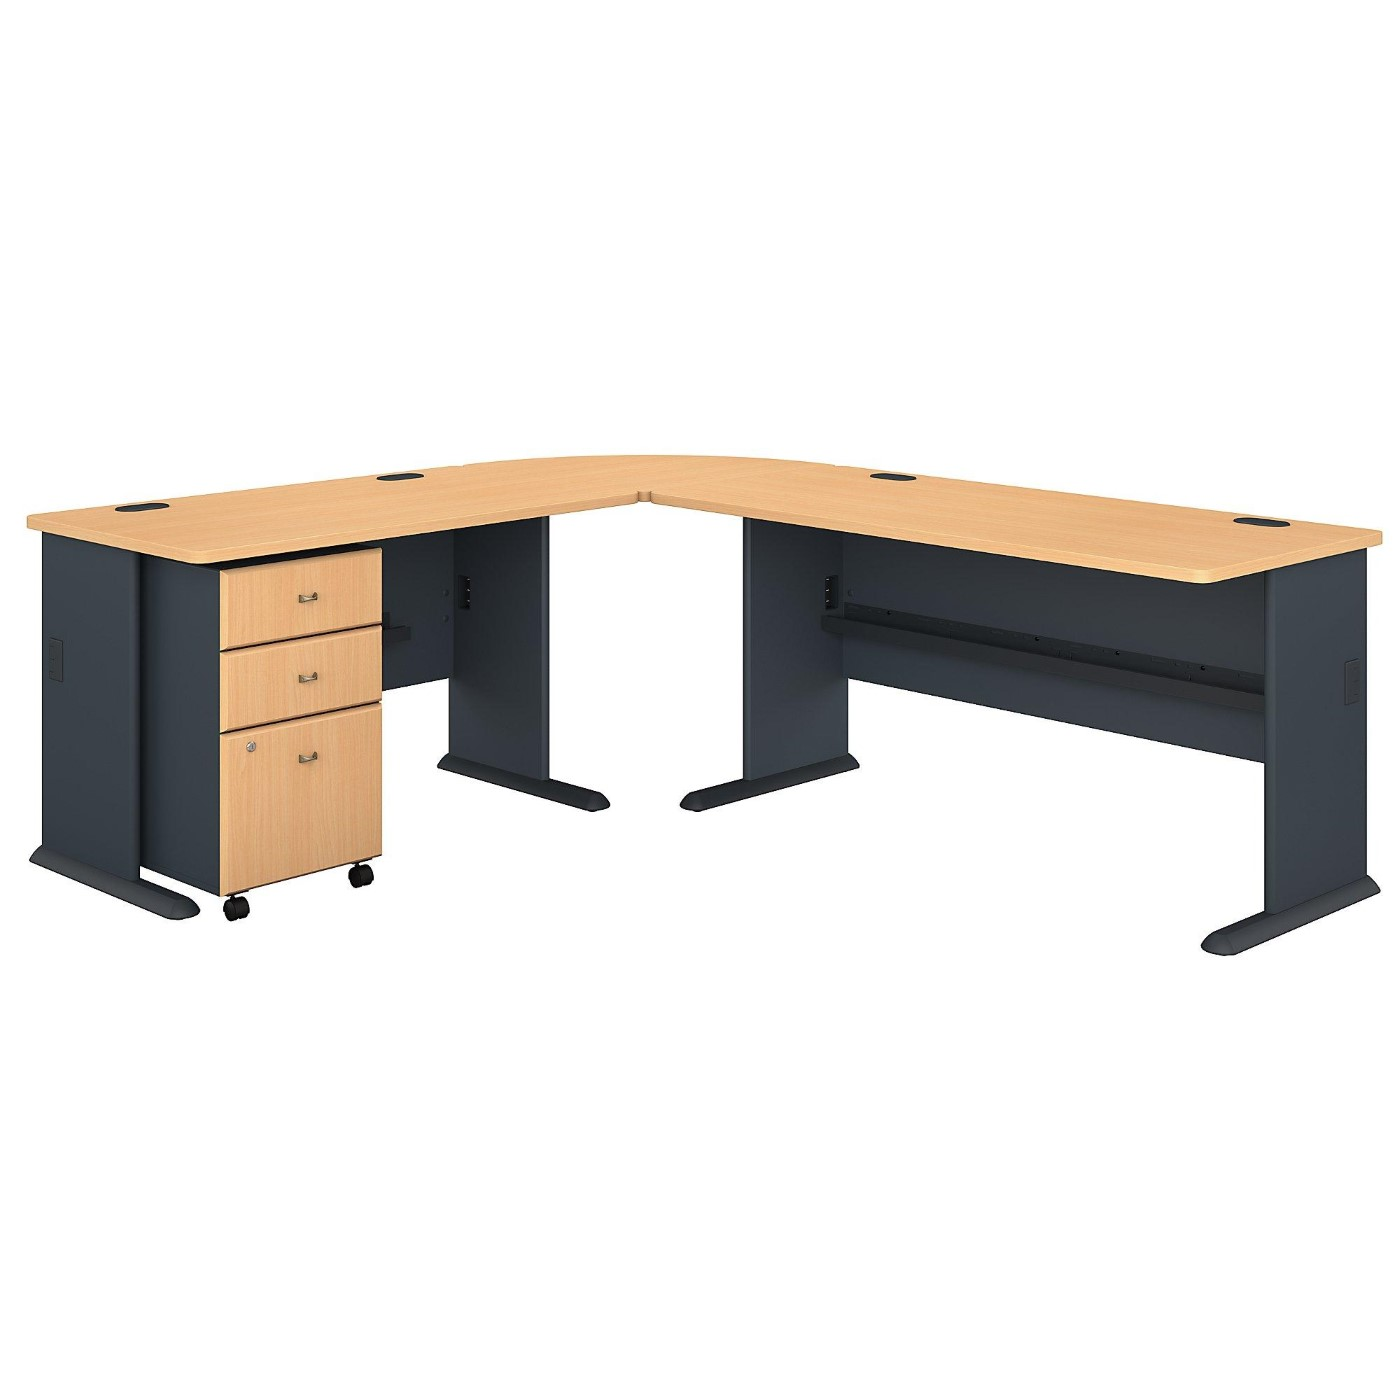 BUSH BUSINESS FURNITURE SERIES A 87W X 75D L SHAPED DESK WITH MOBILE FILE CABINET. FREE SHIPPING</font></b></font>&#x1F384<font color=red><b>ERGONOMICHOME HOLIDAY SALE - ENDS DEC. 17, 2019</b></font>&#x1F384